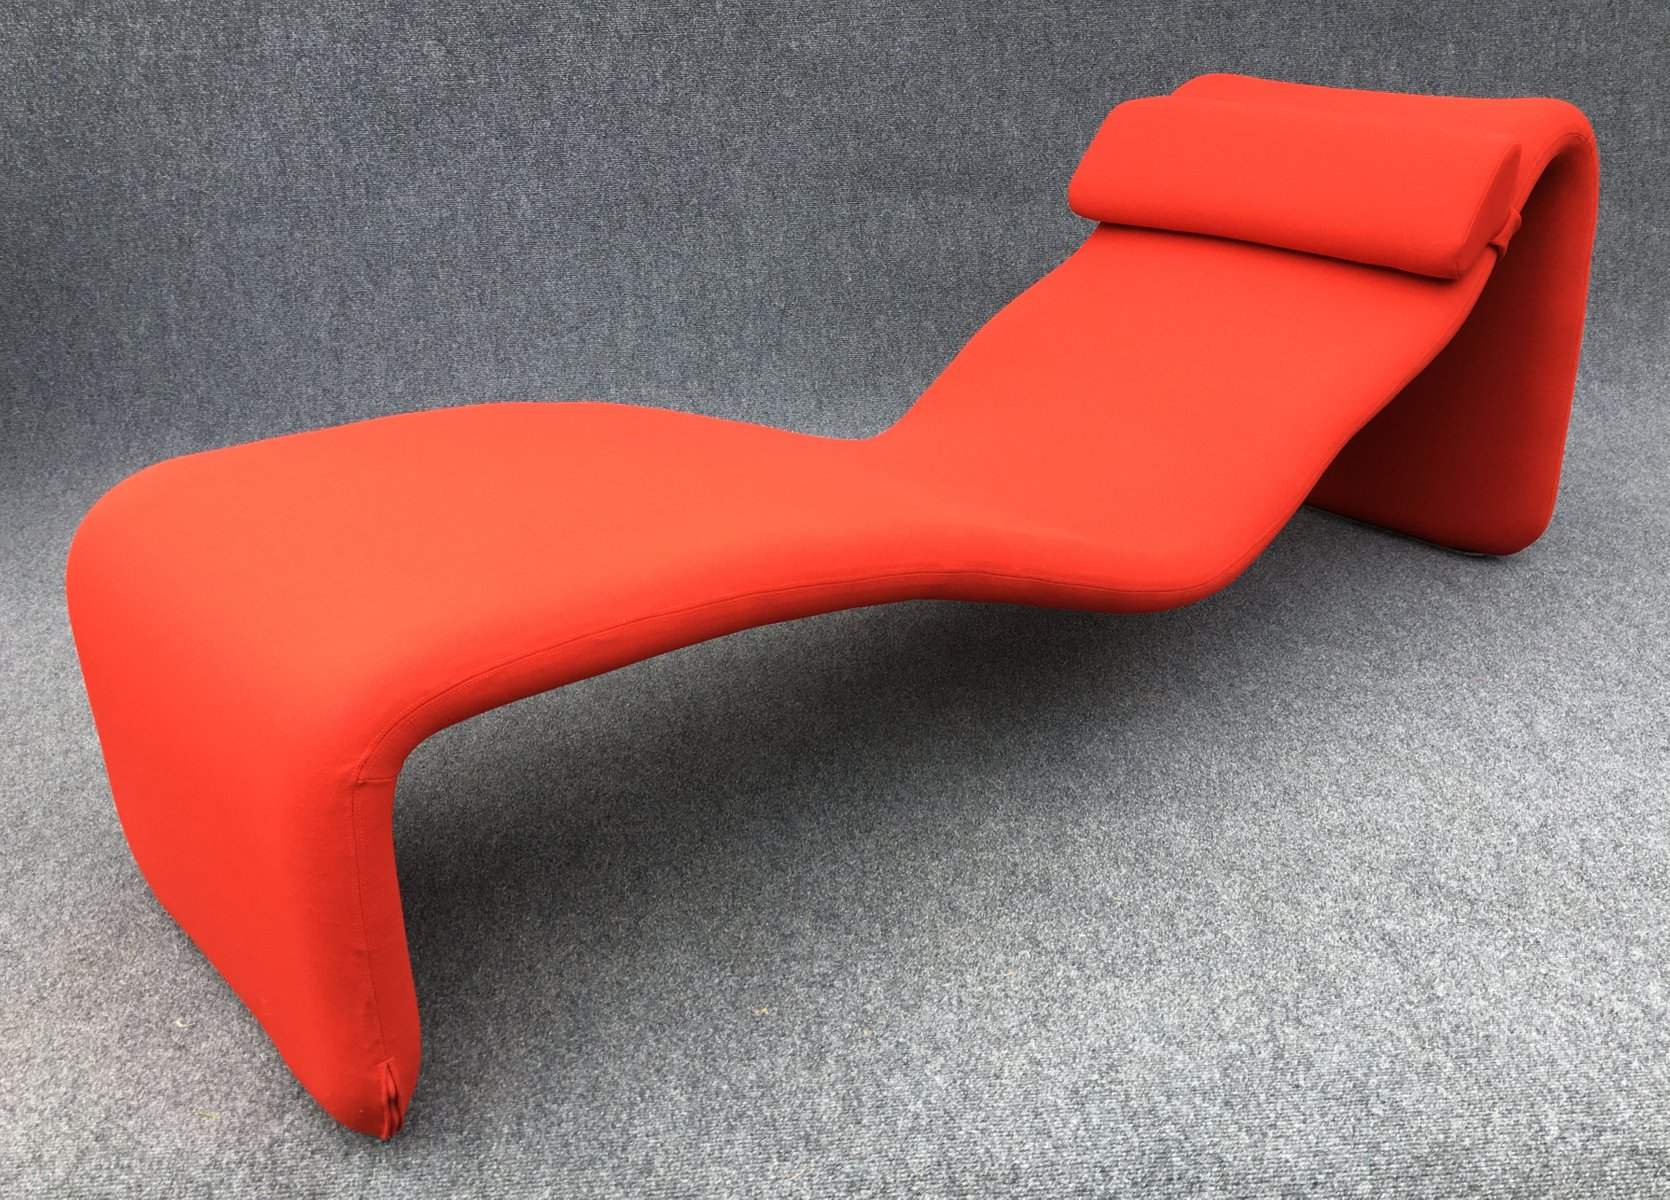 Chaise Longue Rossa Chaise Longue Djiinn Rossa Di Olivier Mourgue Per Airborne